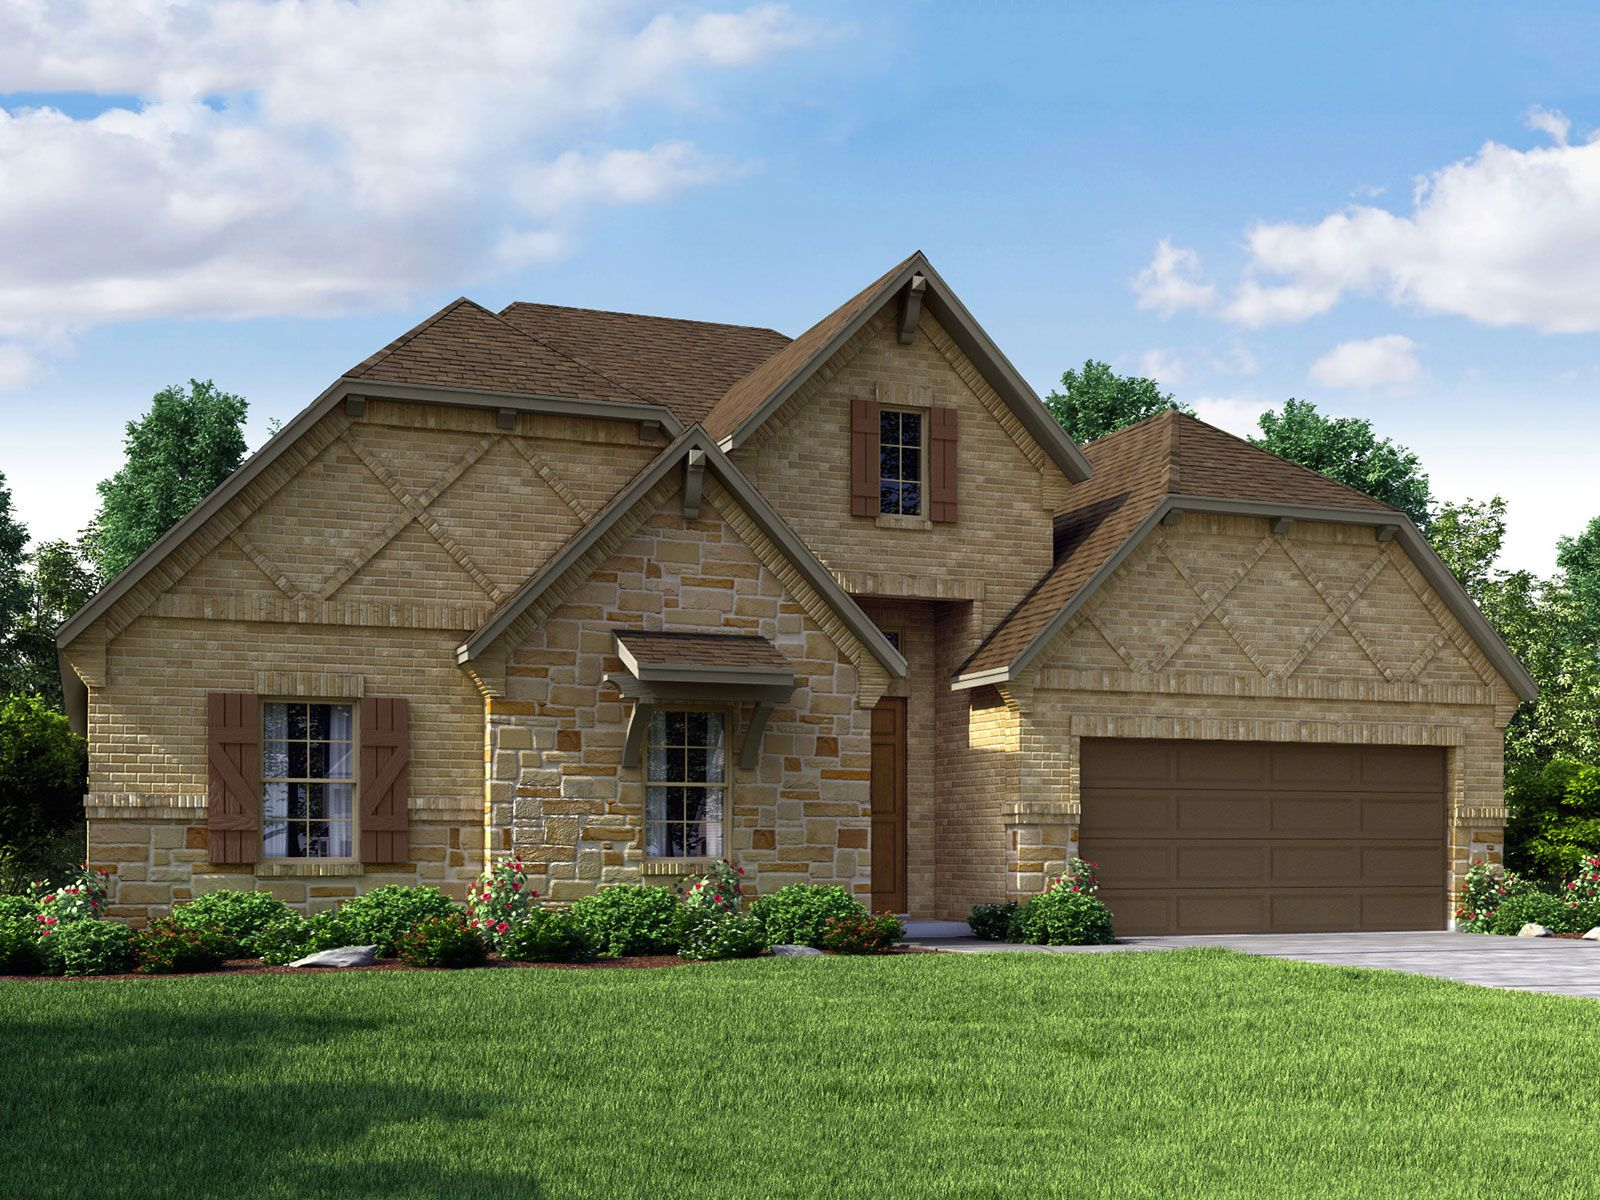 Imperial - Artisan Collection in Sugar Land, TX, New Homes & Floor ...